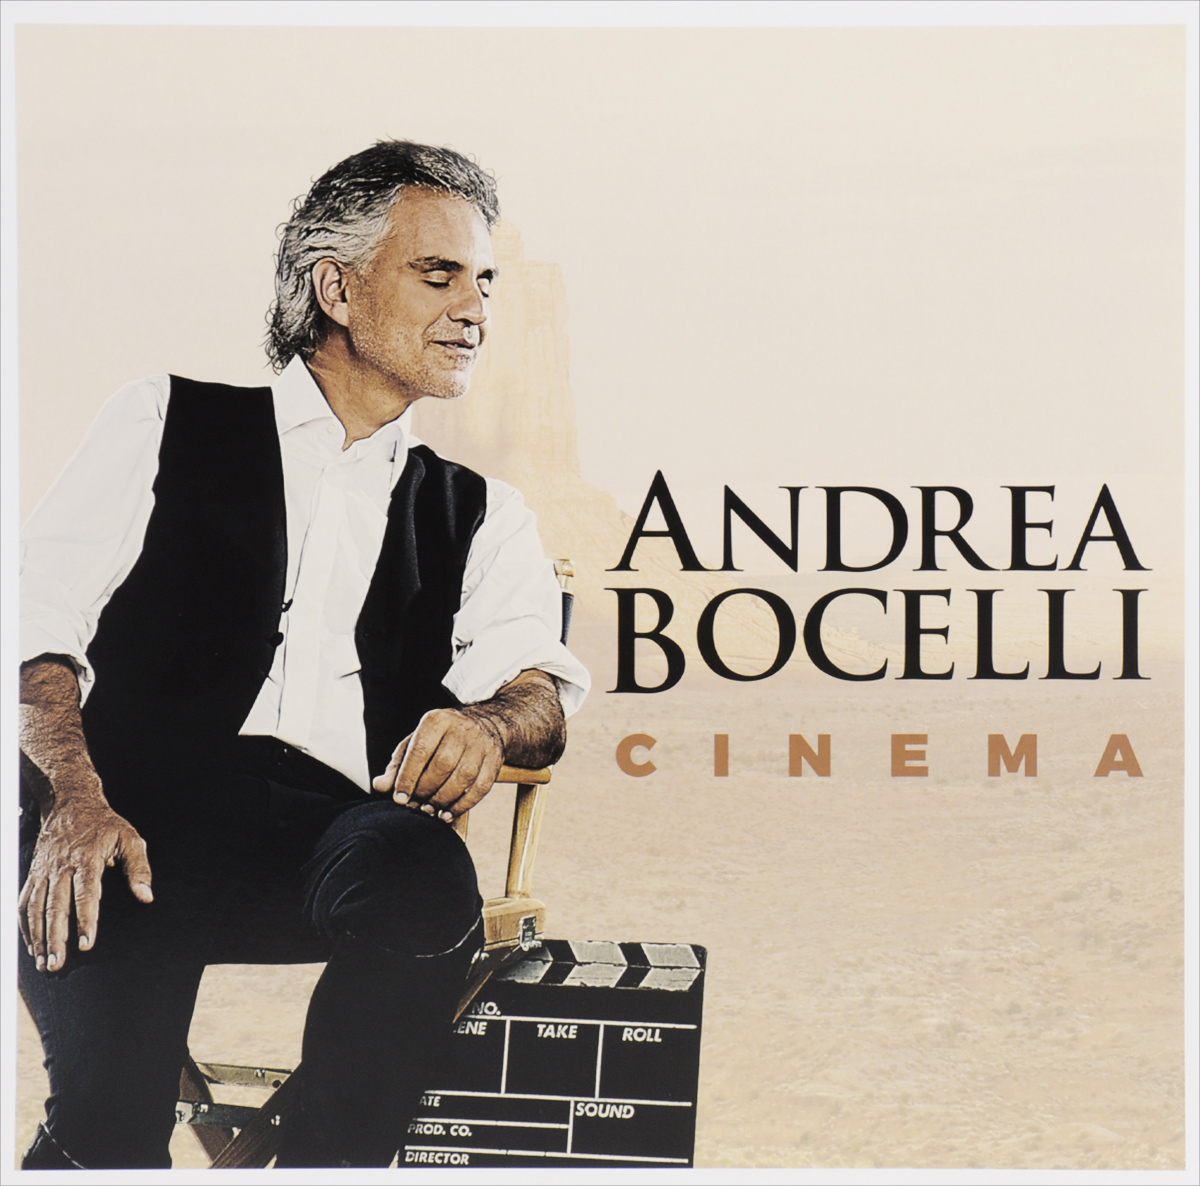 Андреа Бочелли Andrea Bocelli. Cinema. Limited Edition (2 LP) андреа бочелли andrea bocelli the complete pop albums 16 cd